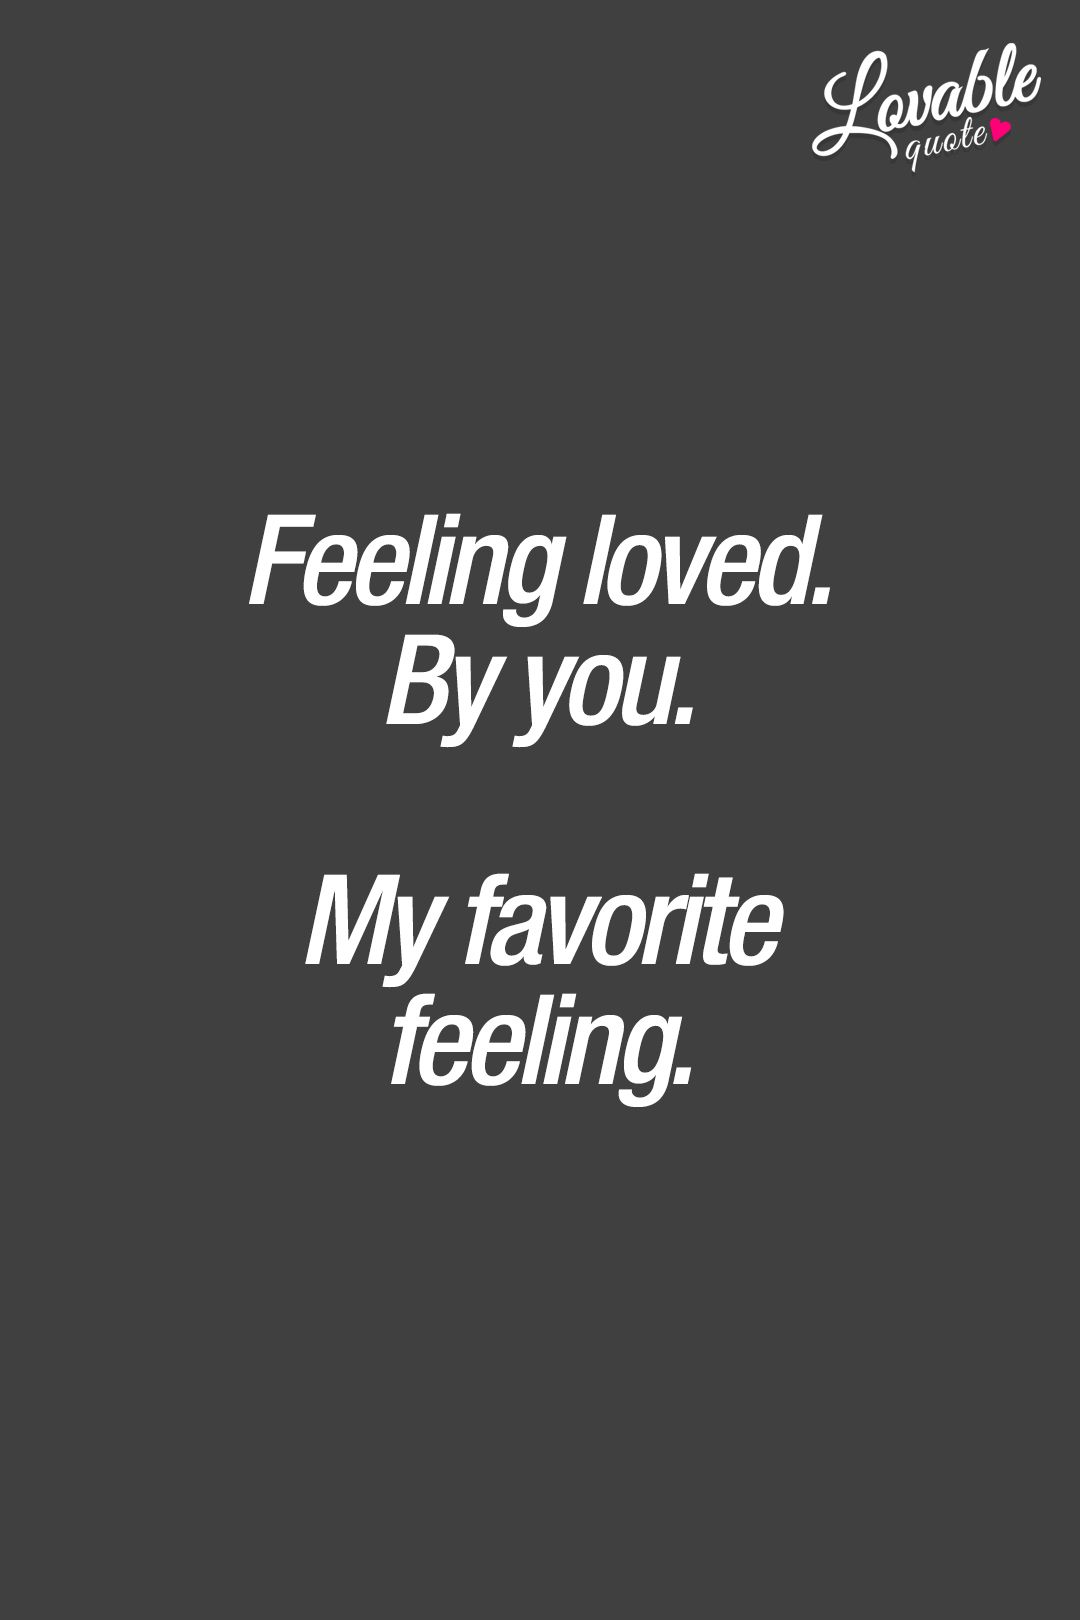 Feeling Loved Quotes Couple Love Quotes Feeling Lovedyoumy Favorite Feeling